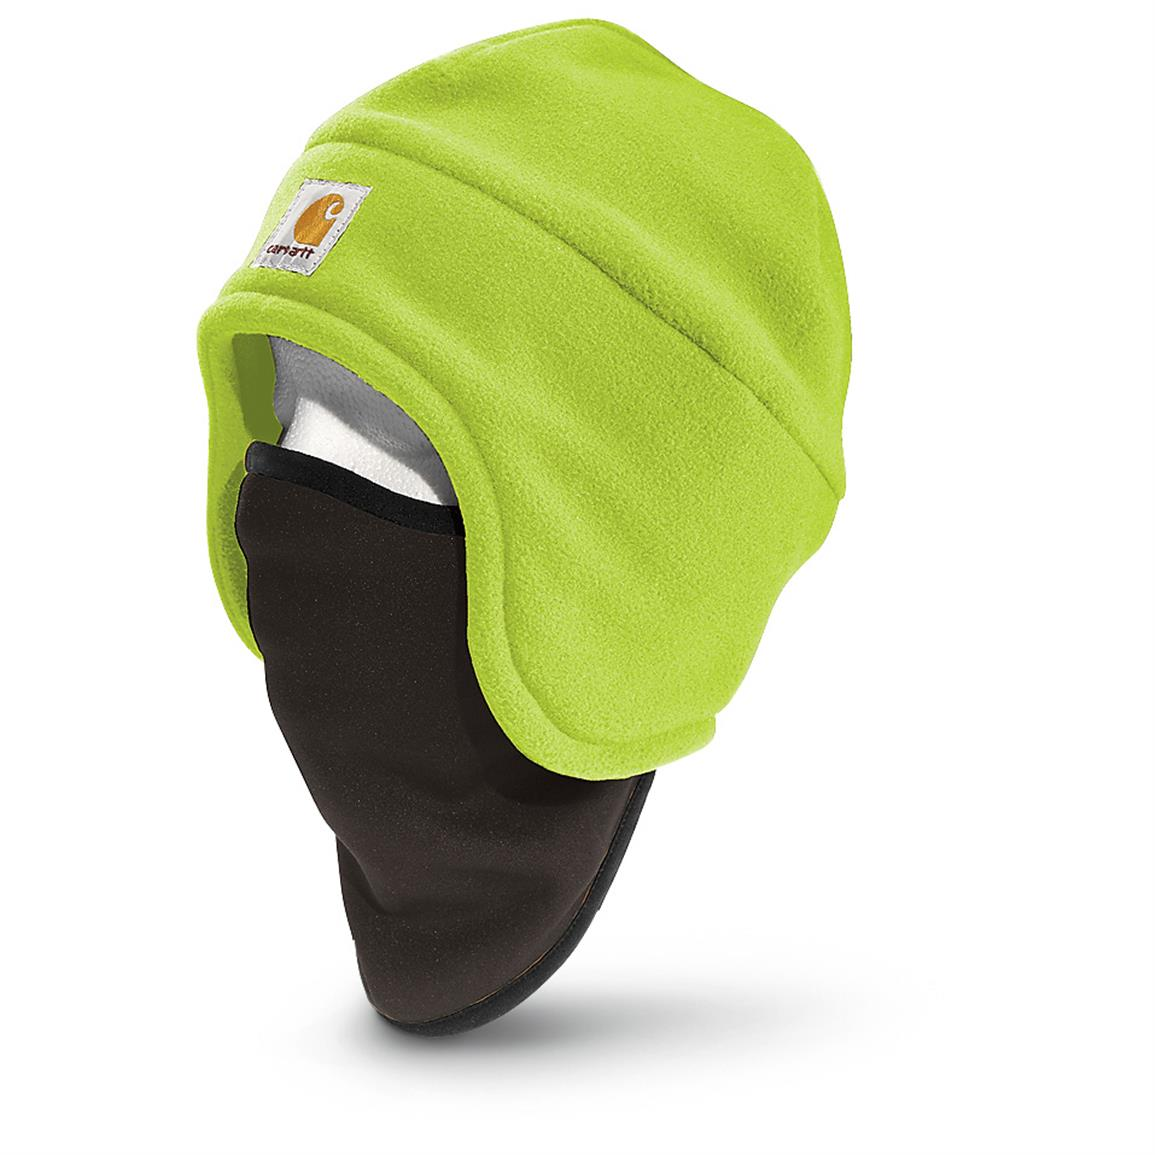 Carhartt High-Visibility Color-Enhanced Fleece 2-In-1 Hat, Bright Lime